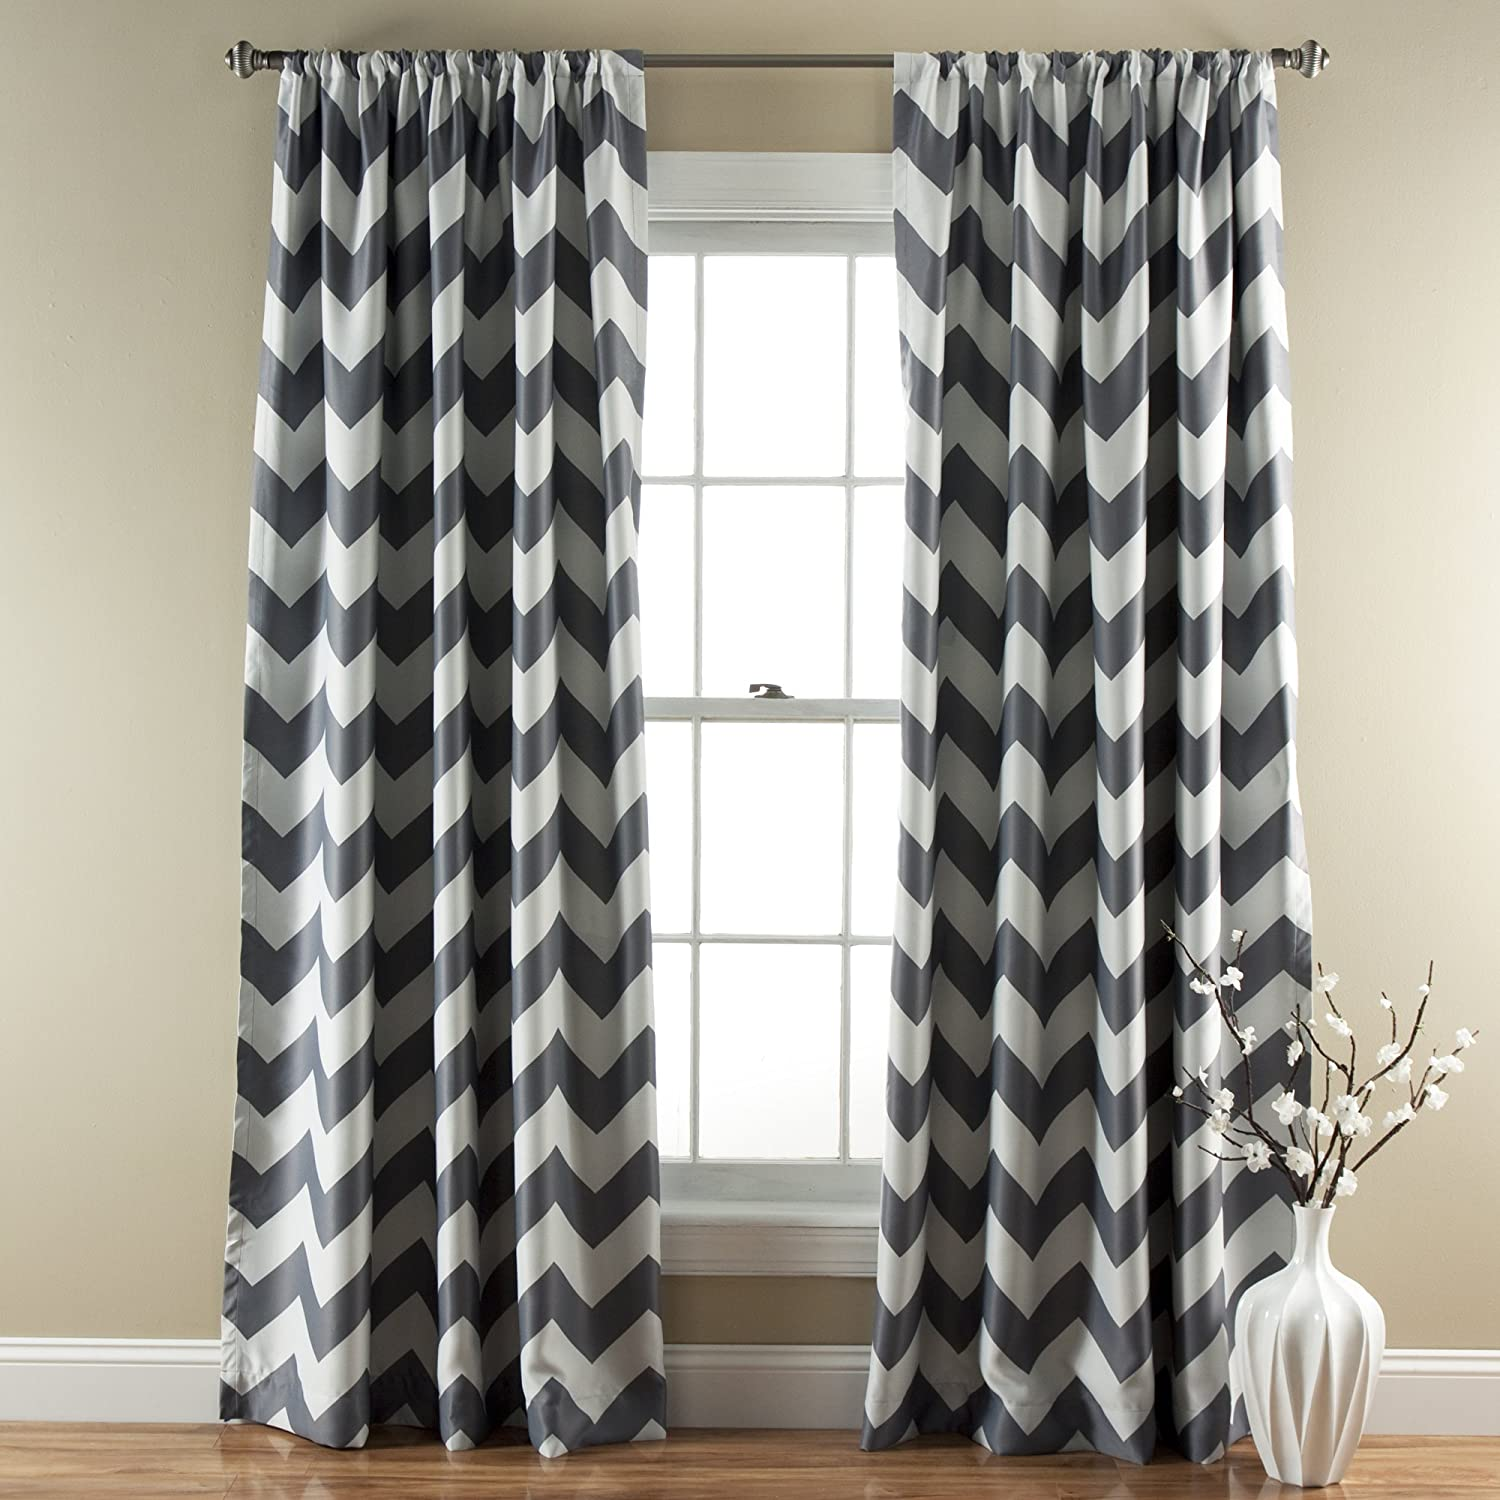 "Lush Decor Chevron Blackout Curtains Window Panel Pair | Room Darkening, Energy Efficient Drapes, 84"" x 52"", Gray, Set 84"" x 52"""